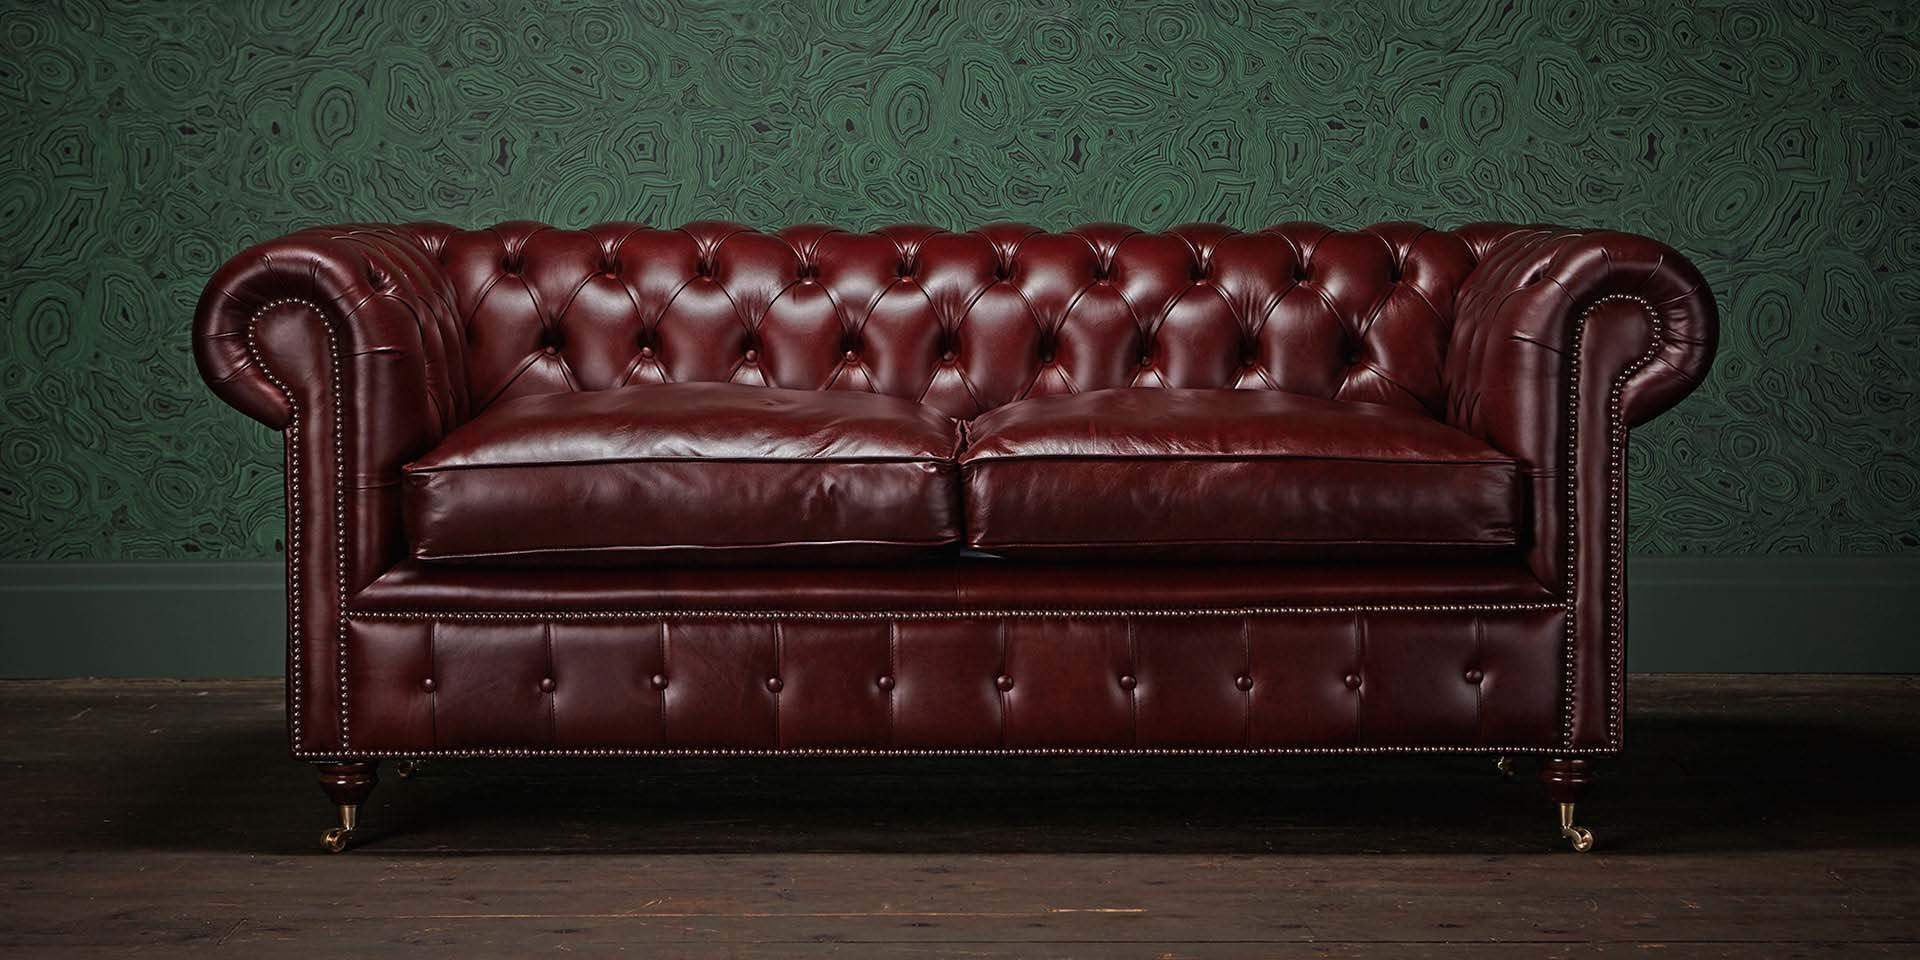 Chesterfields Of England The Original Chesterfield Company For Chesterfield Sofa And Chairs (Image 5 of 15)